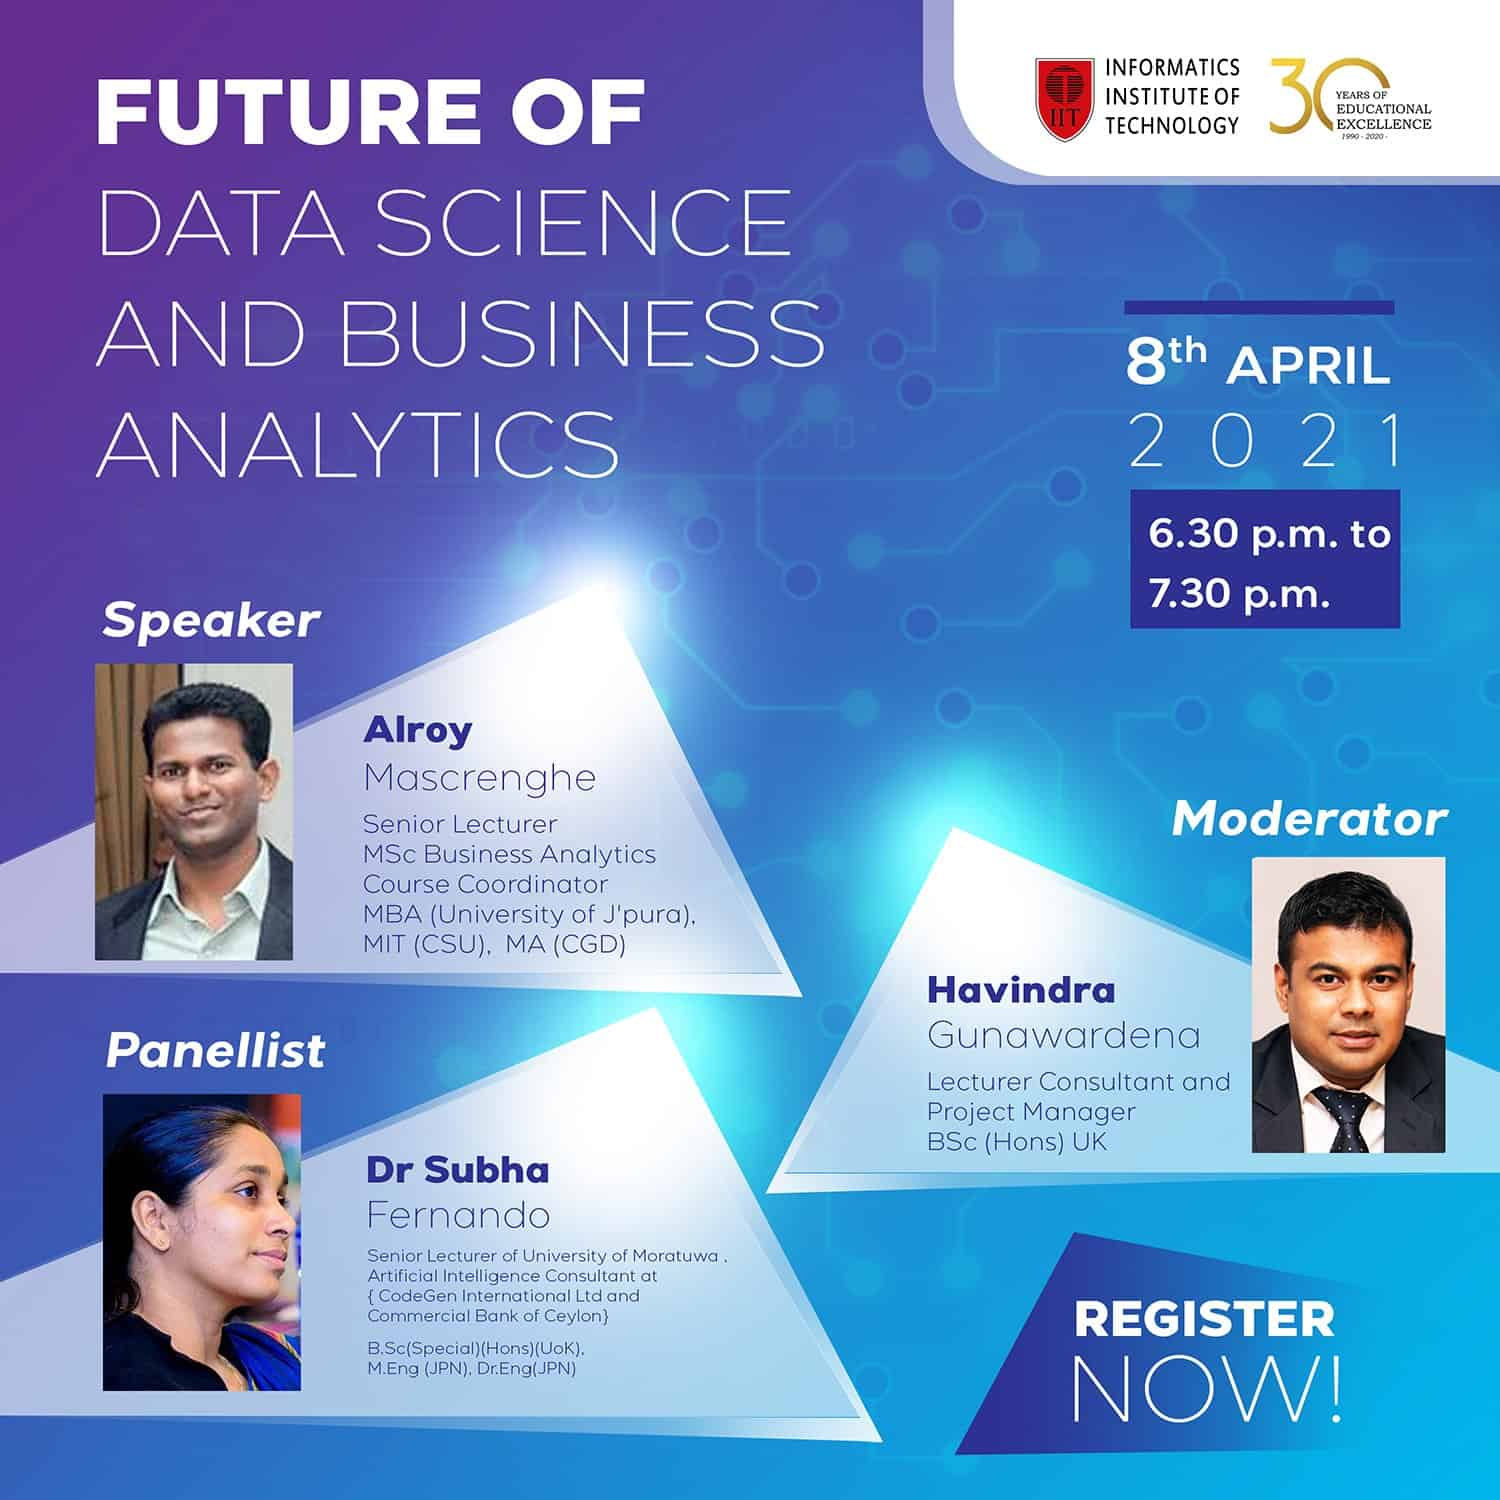 Future of Data Science and Business Analytics